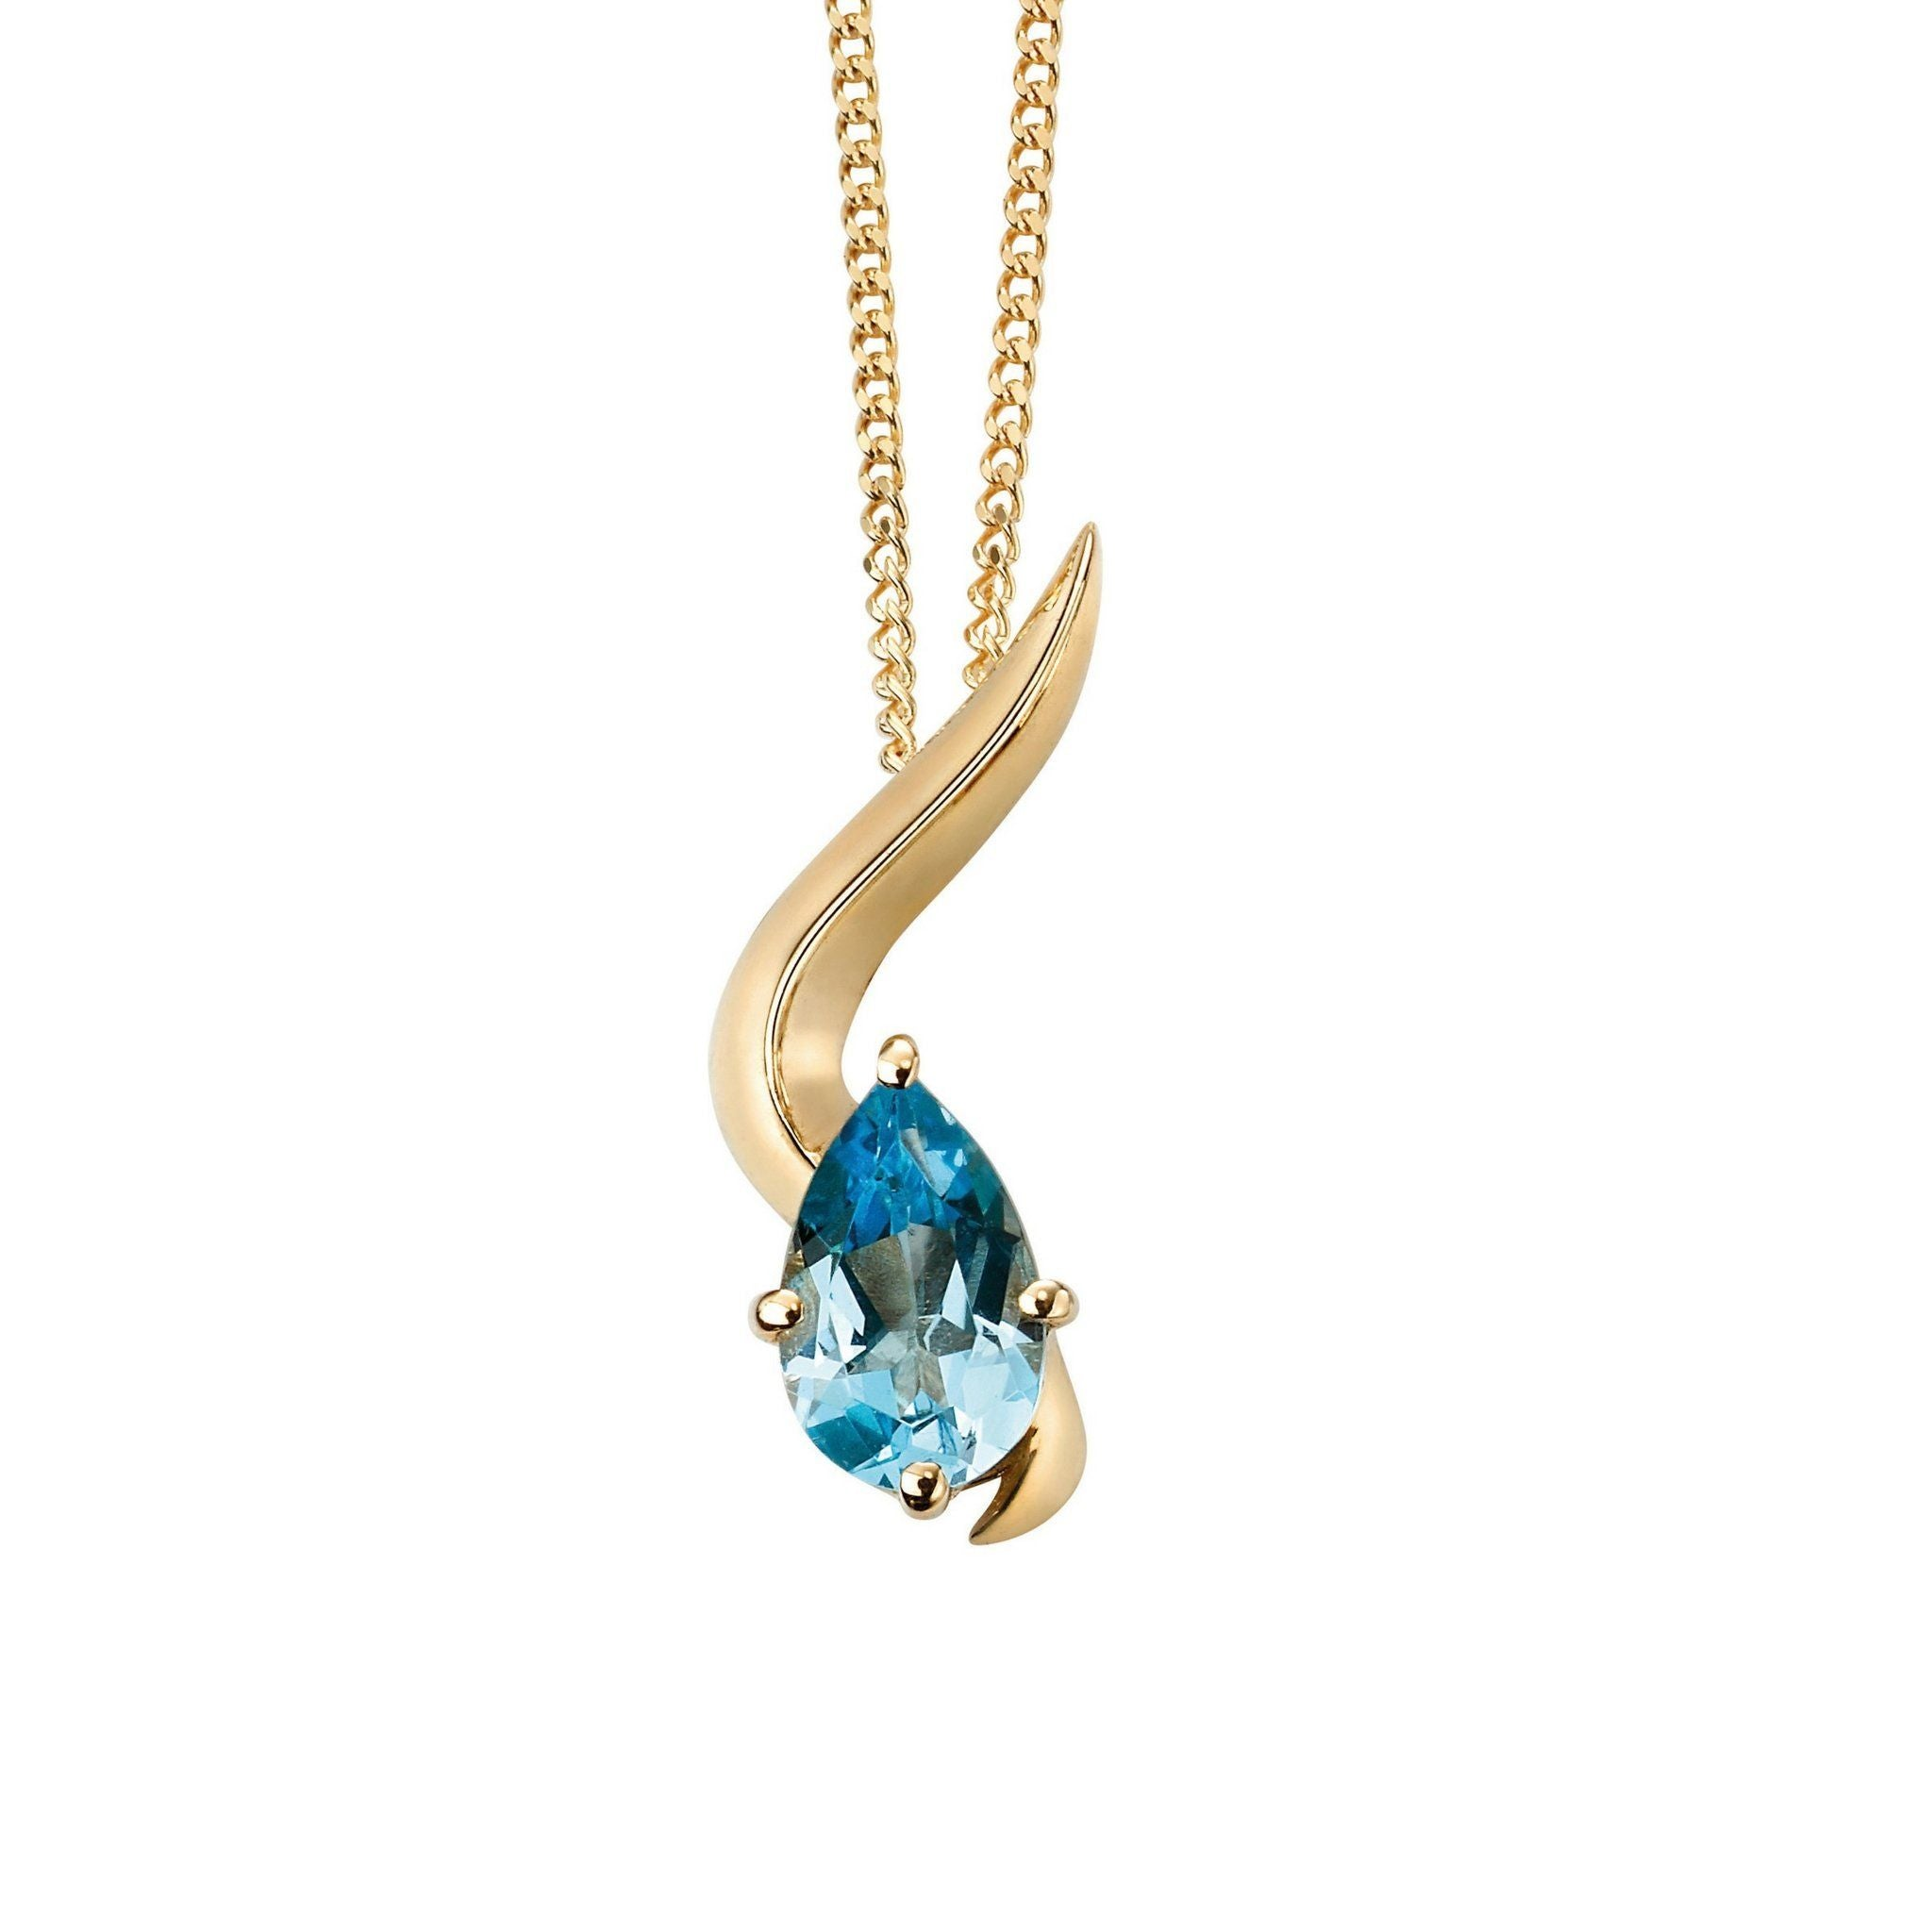 9ct Yellow Gold & Blue Topaz Pendant